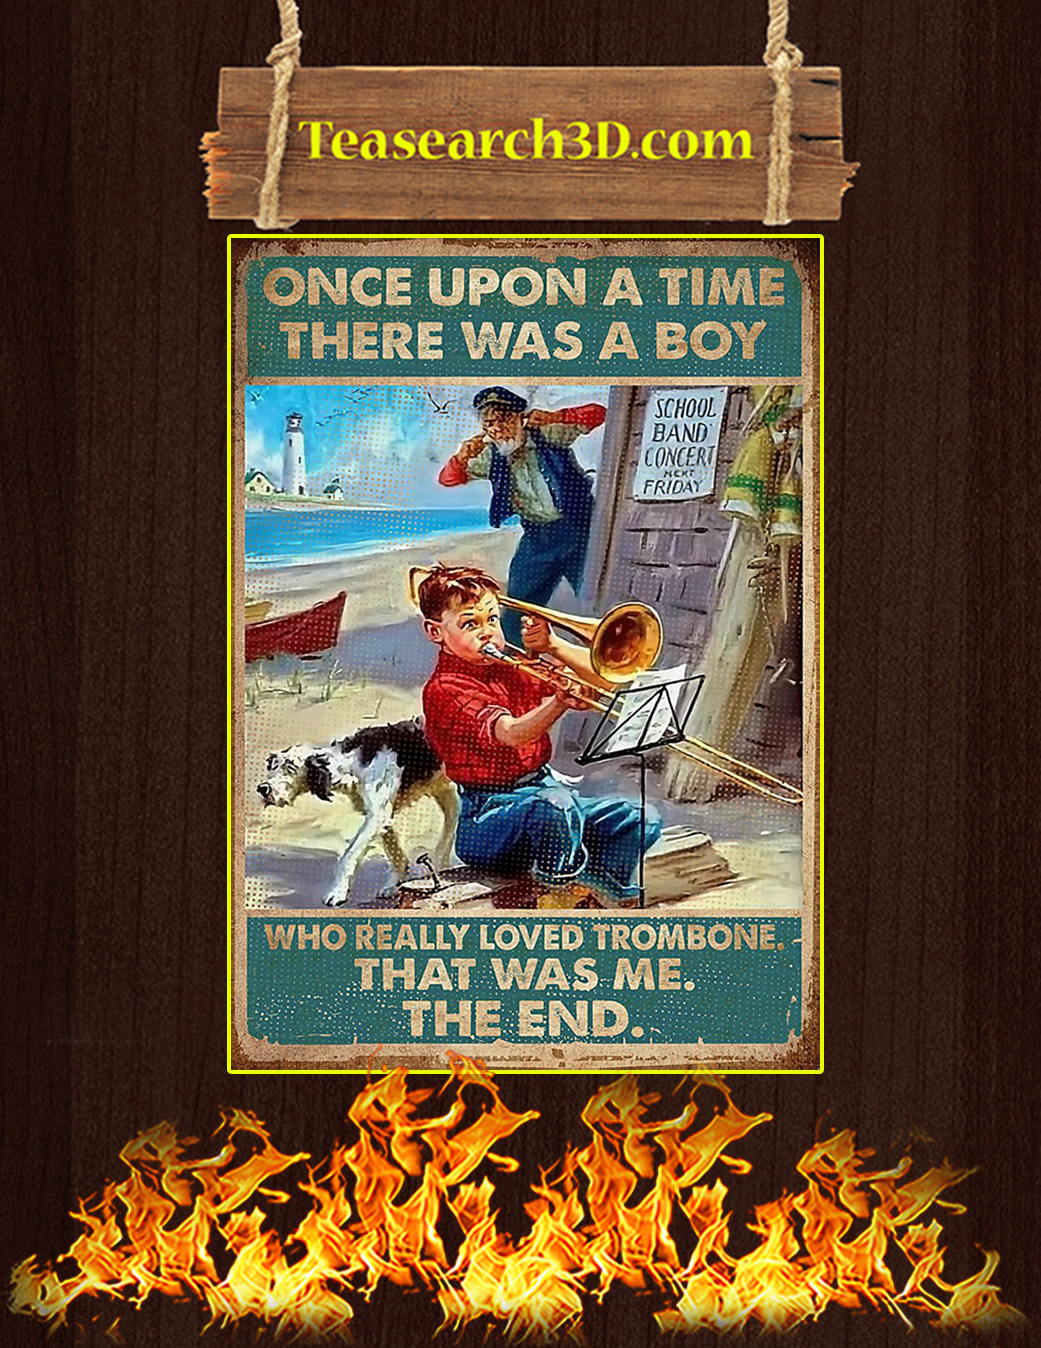 Once upon a time there was a boy who really loved trombone poster A1